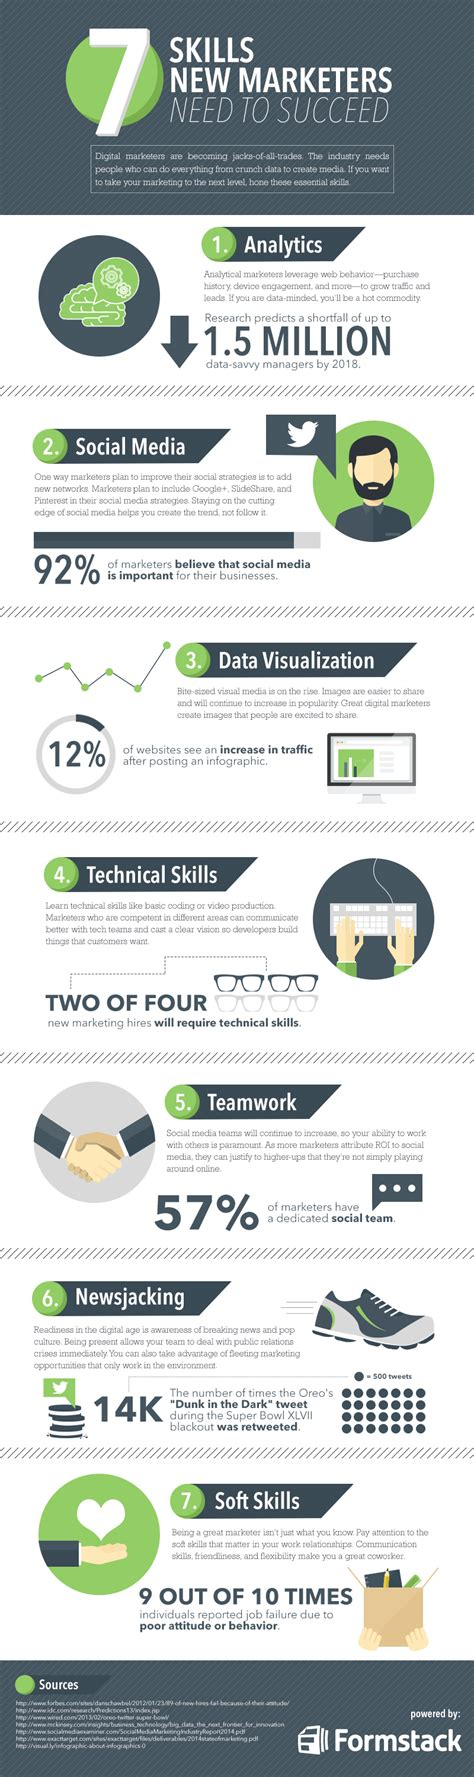 New Years Habits Worth Forming For B2b Marketing Pros Customerthink 7 Skills New Marketers Need To Succeed Infographic